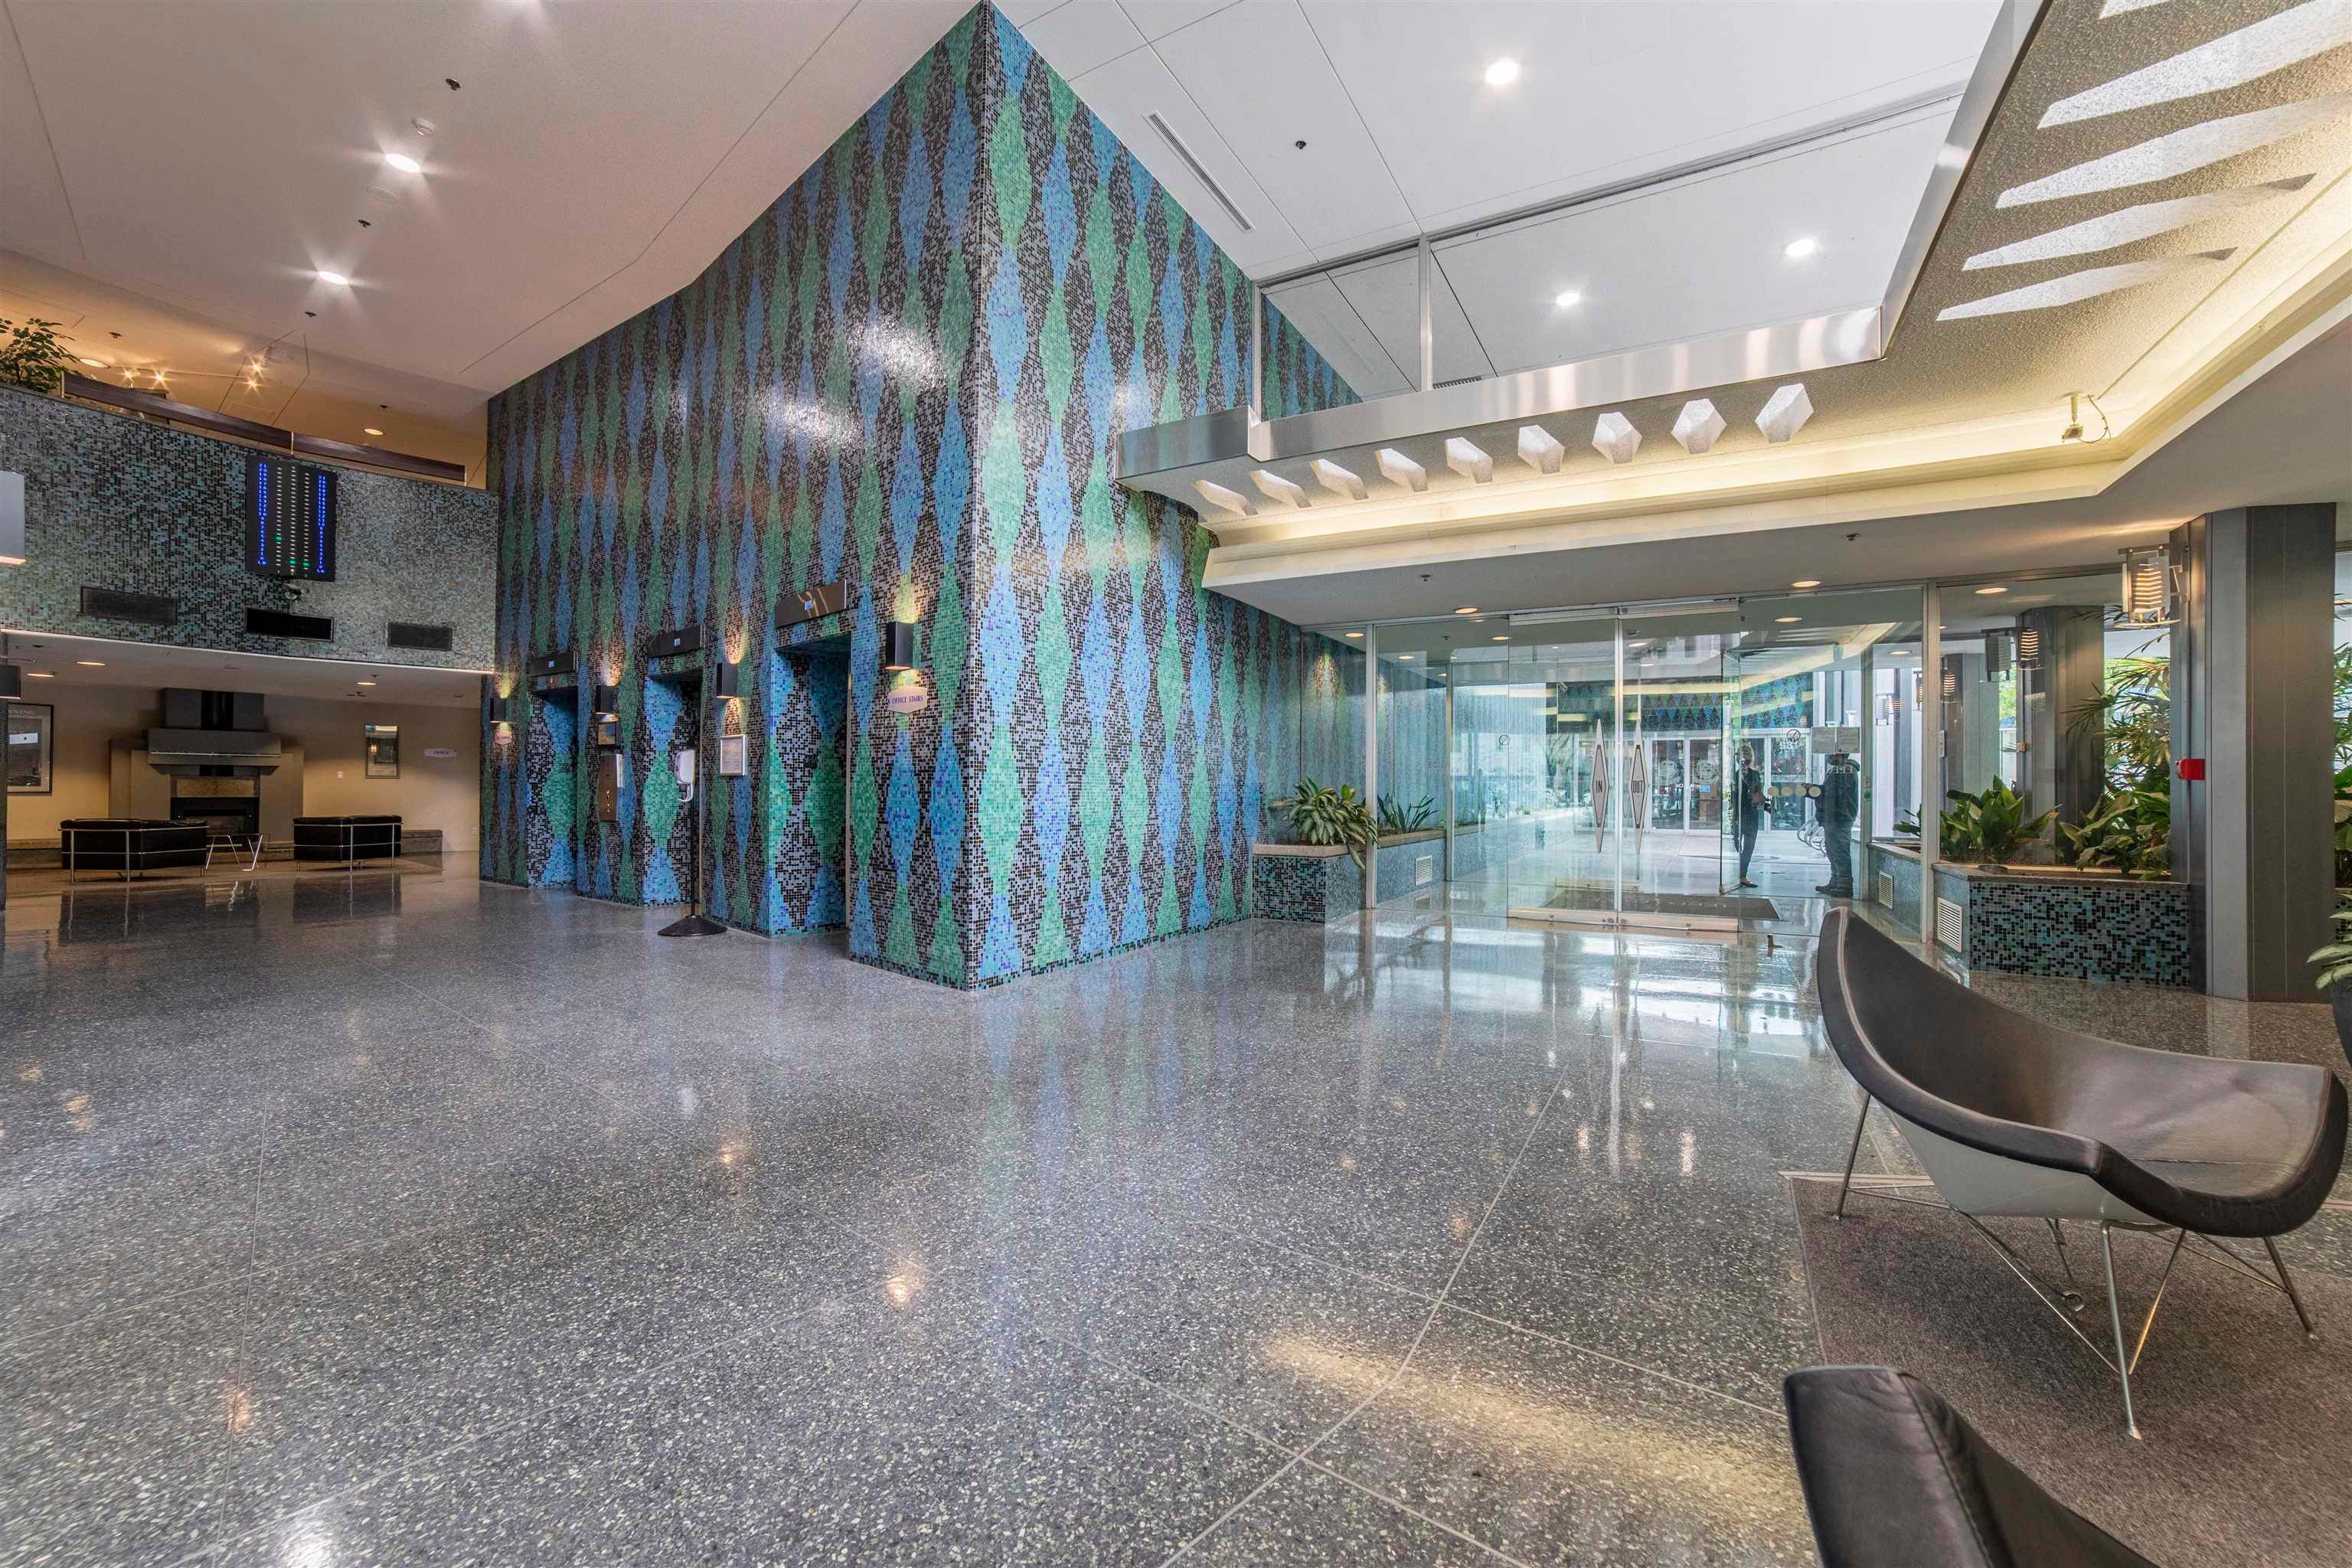 1302 989 NELSON STREET - Downtown VW Apartment/Condo for sale, 2 Bedrooms (R2616095) - #1